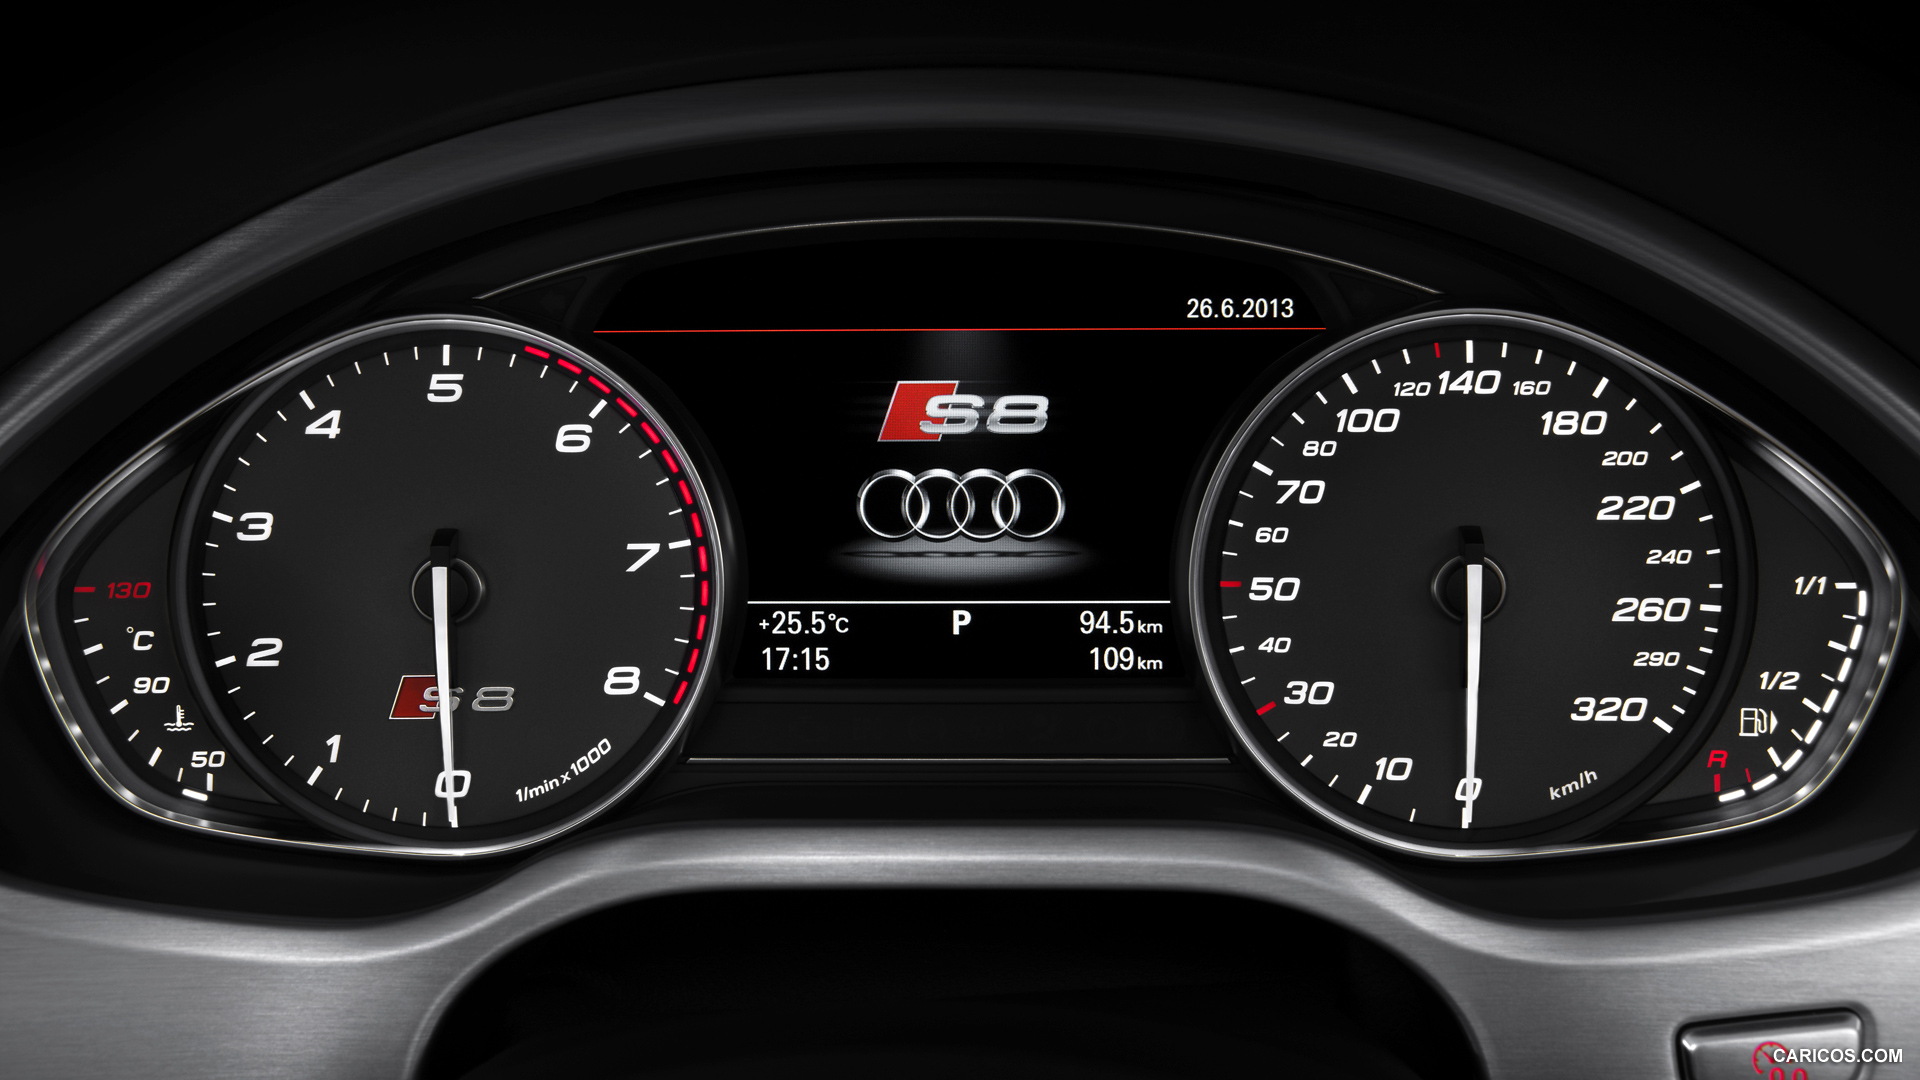 Audi S8 2014   Instrument Cluster HD Wallpaper 47 1920x1080